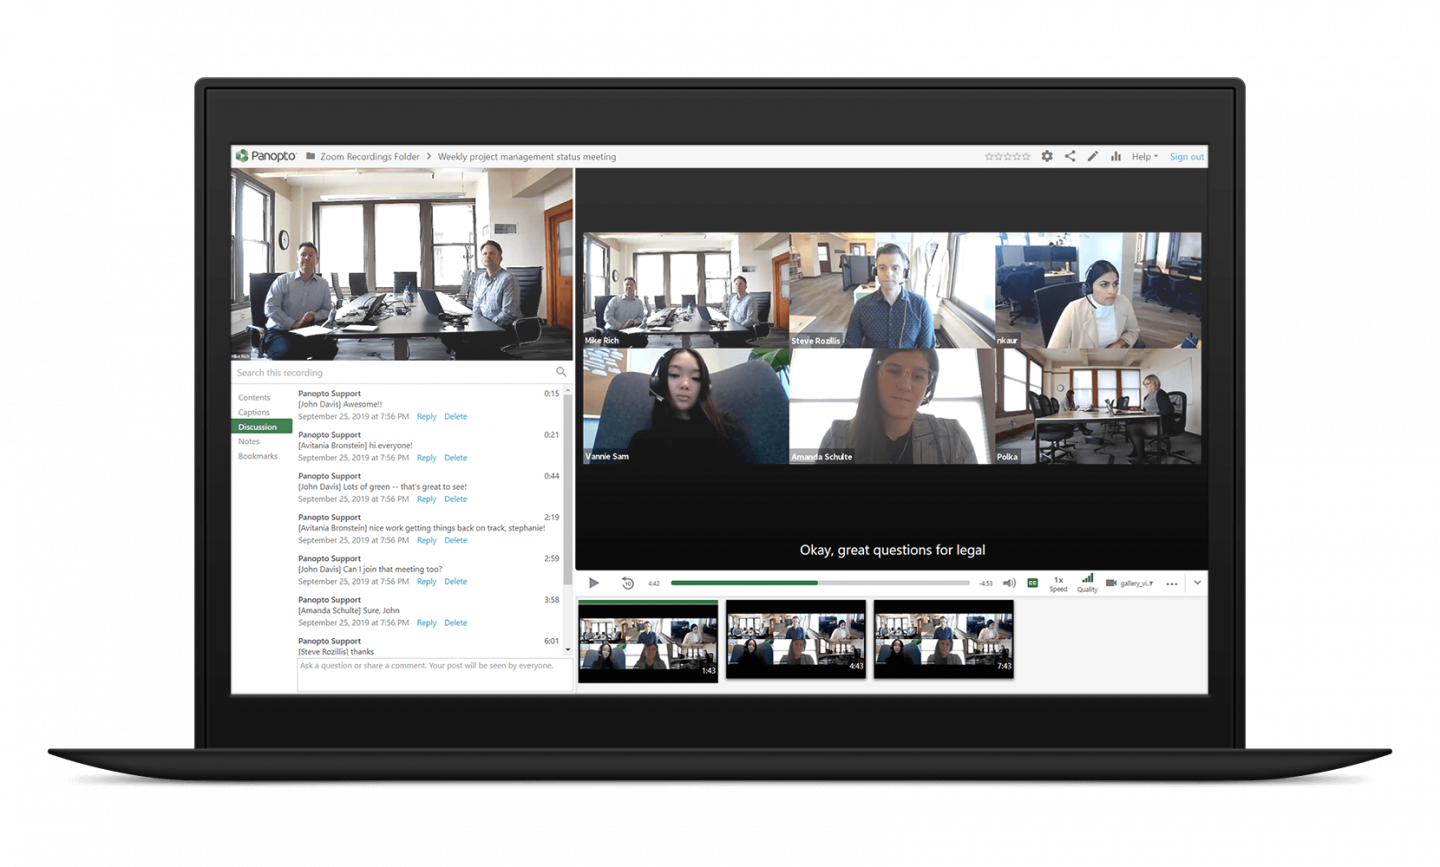 Panopto transcribes every work spoken in meetings automatically